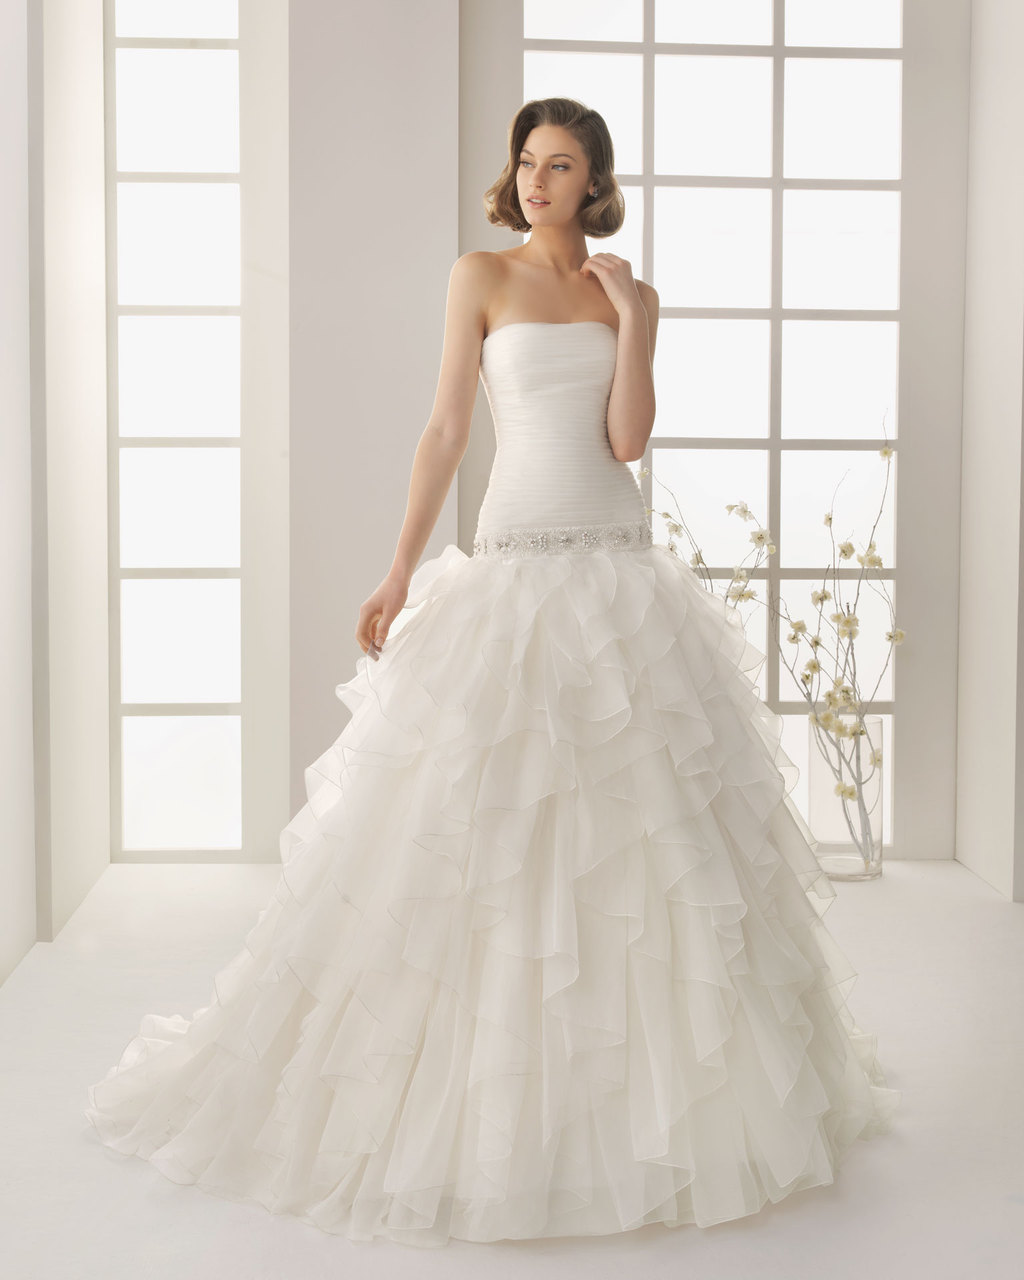 Classic-wedding-dress-strapless-with-pleating-rosa-clara-2013.full